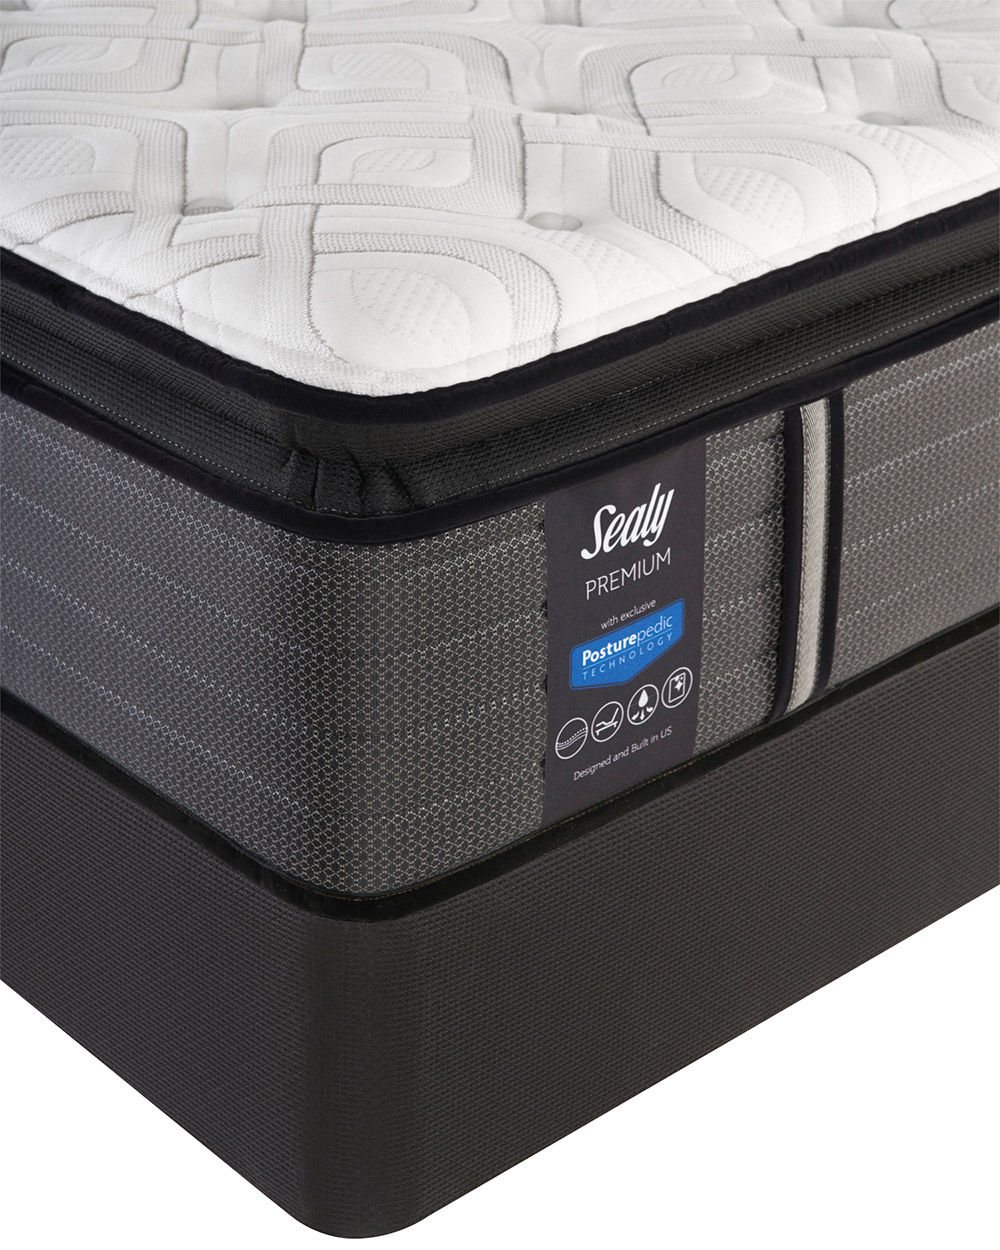 Picture of Sealy Response Spensley Plush PillowTop Queen Mattress Only